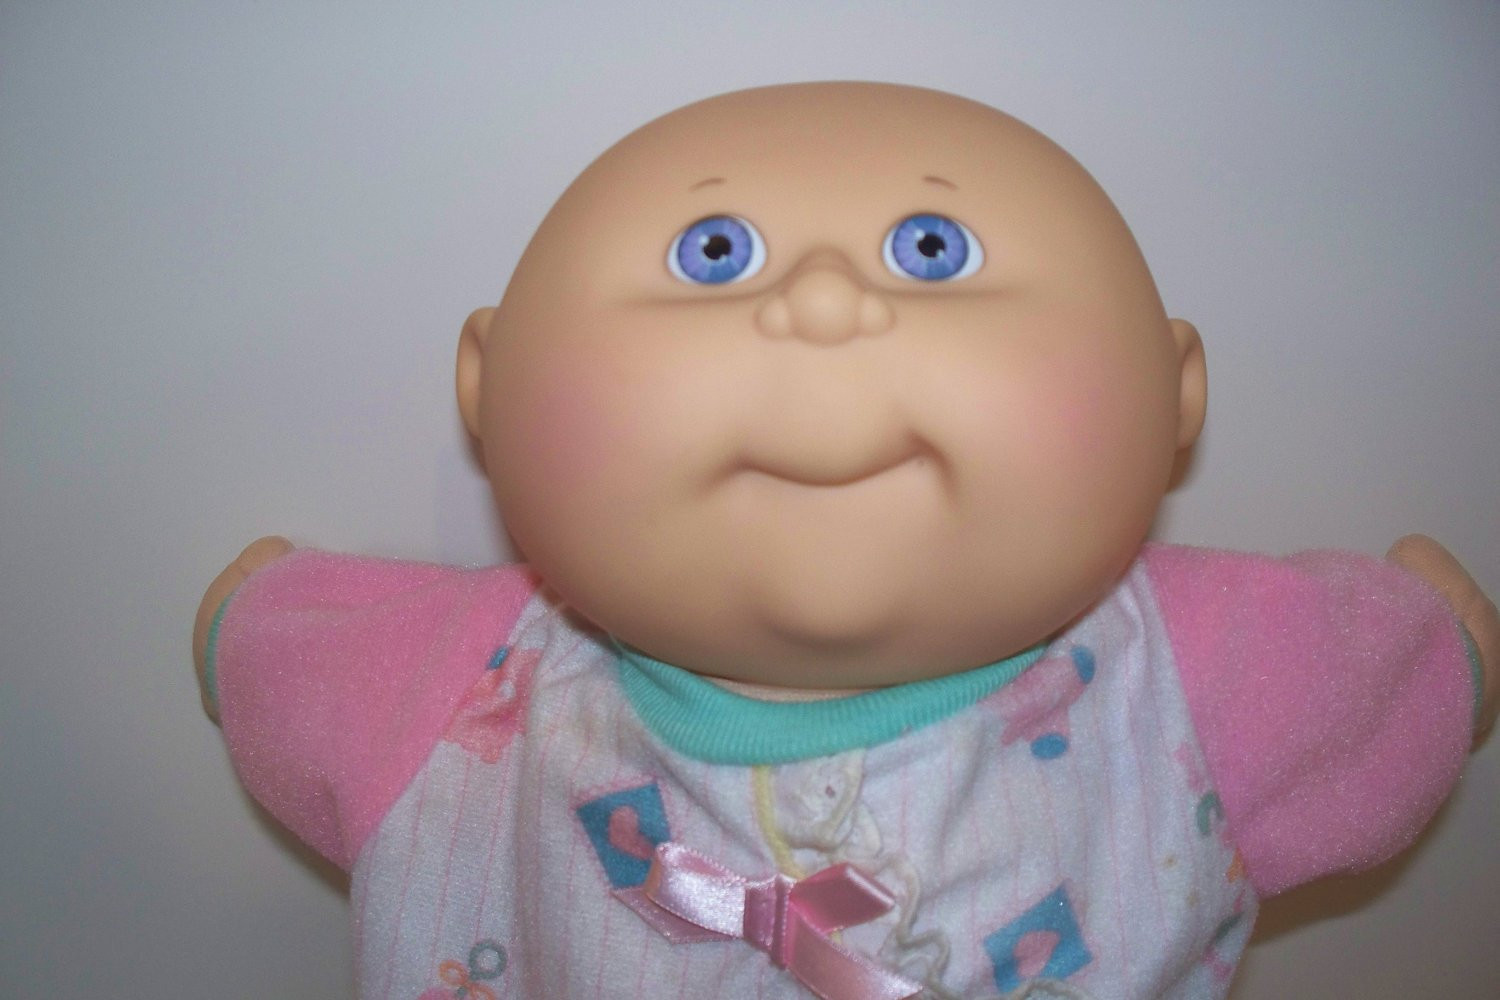 Vintage Cabbage Patch Dolls Luxury Vintage Dolls Cabbage Patch Dolls 1991 Baby Cabbage Patch Of Vintage Cabbage Patch Dolls Fresh Cabbage Patch Kids Vintage Doll Limited Edition 30th